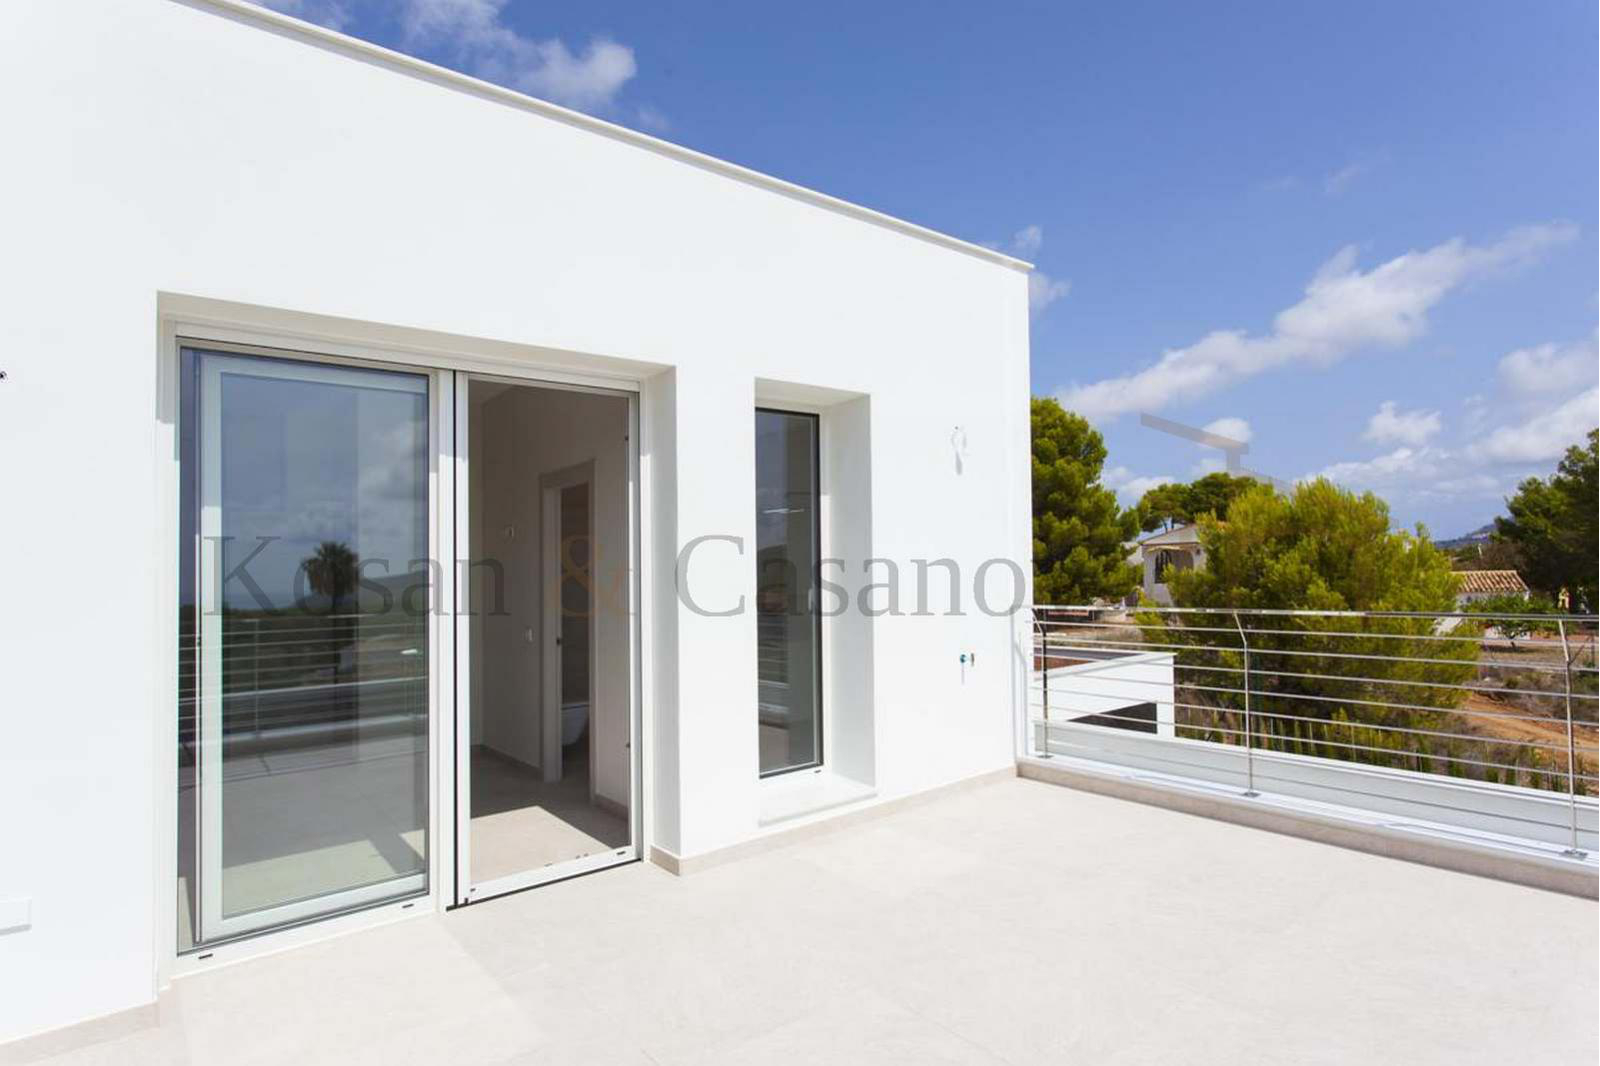 Moraira / Teulada- A contemporary Villa, bright and airy, with openspaces, ideal for modern living pic 2